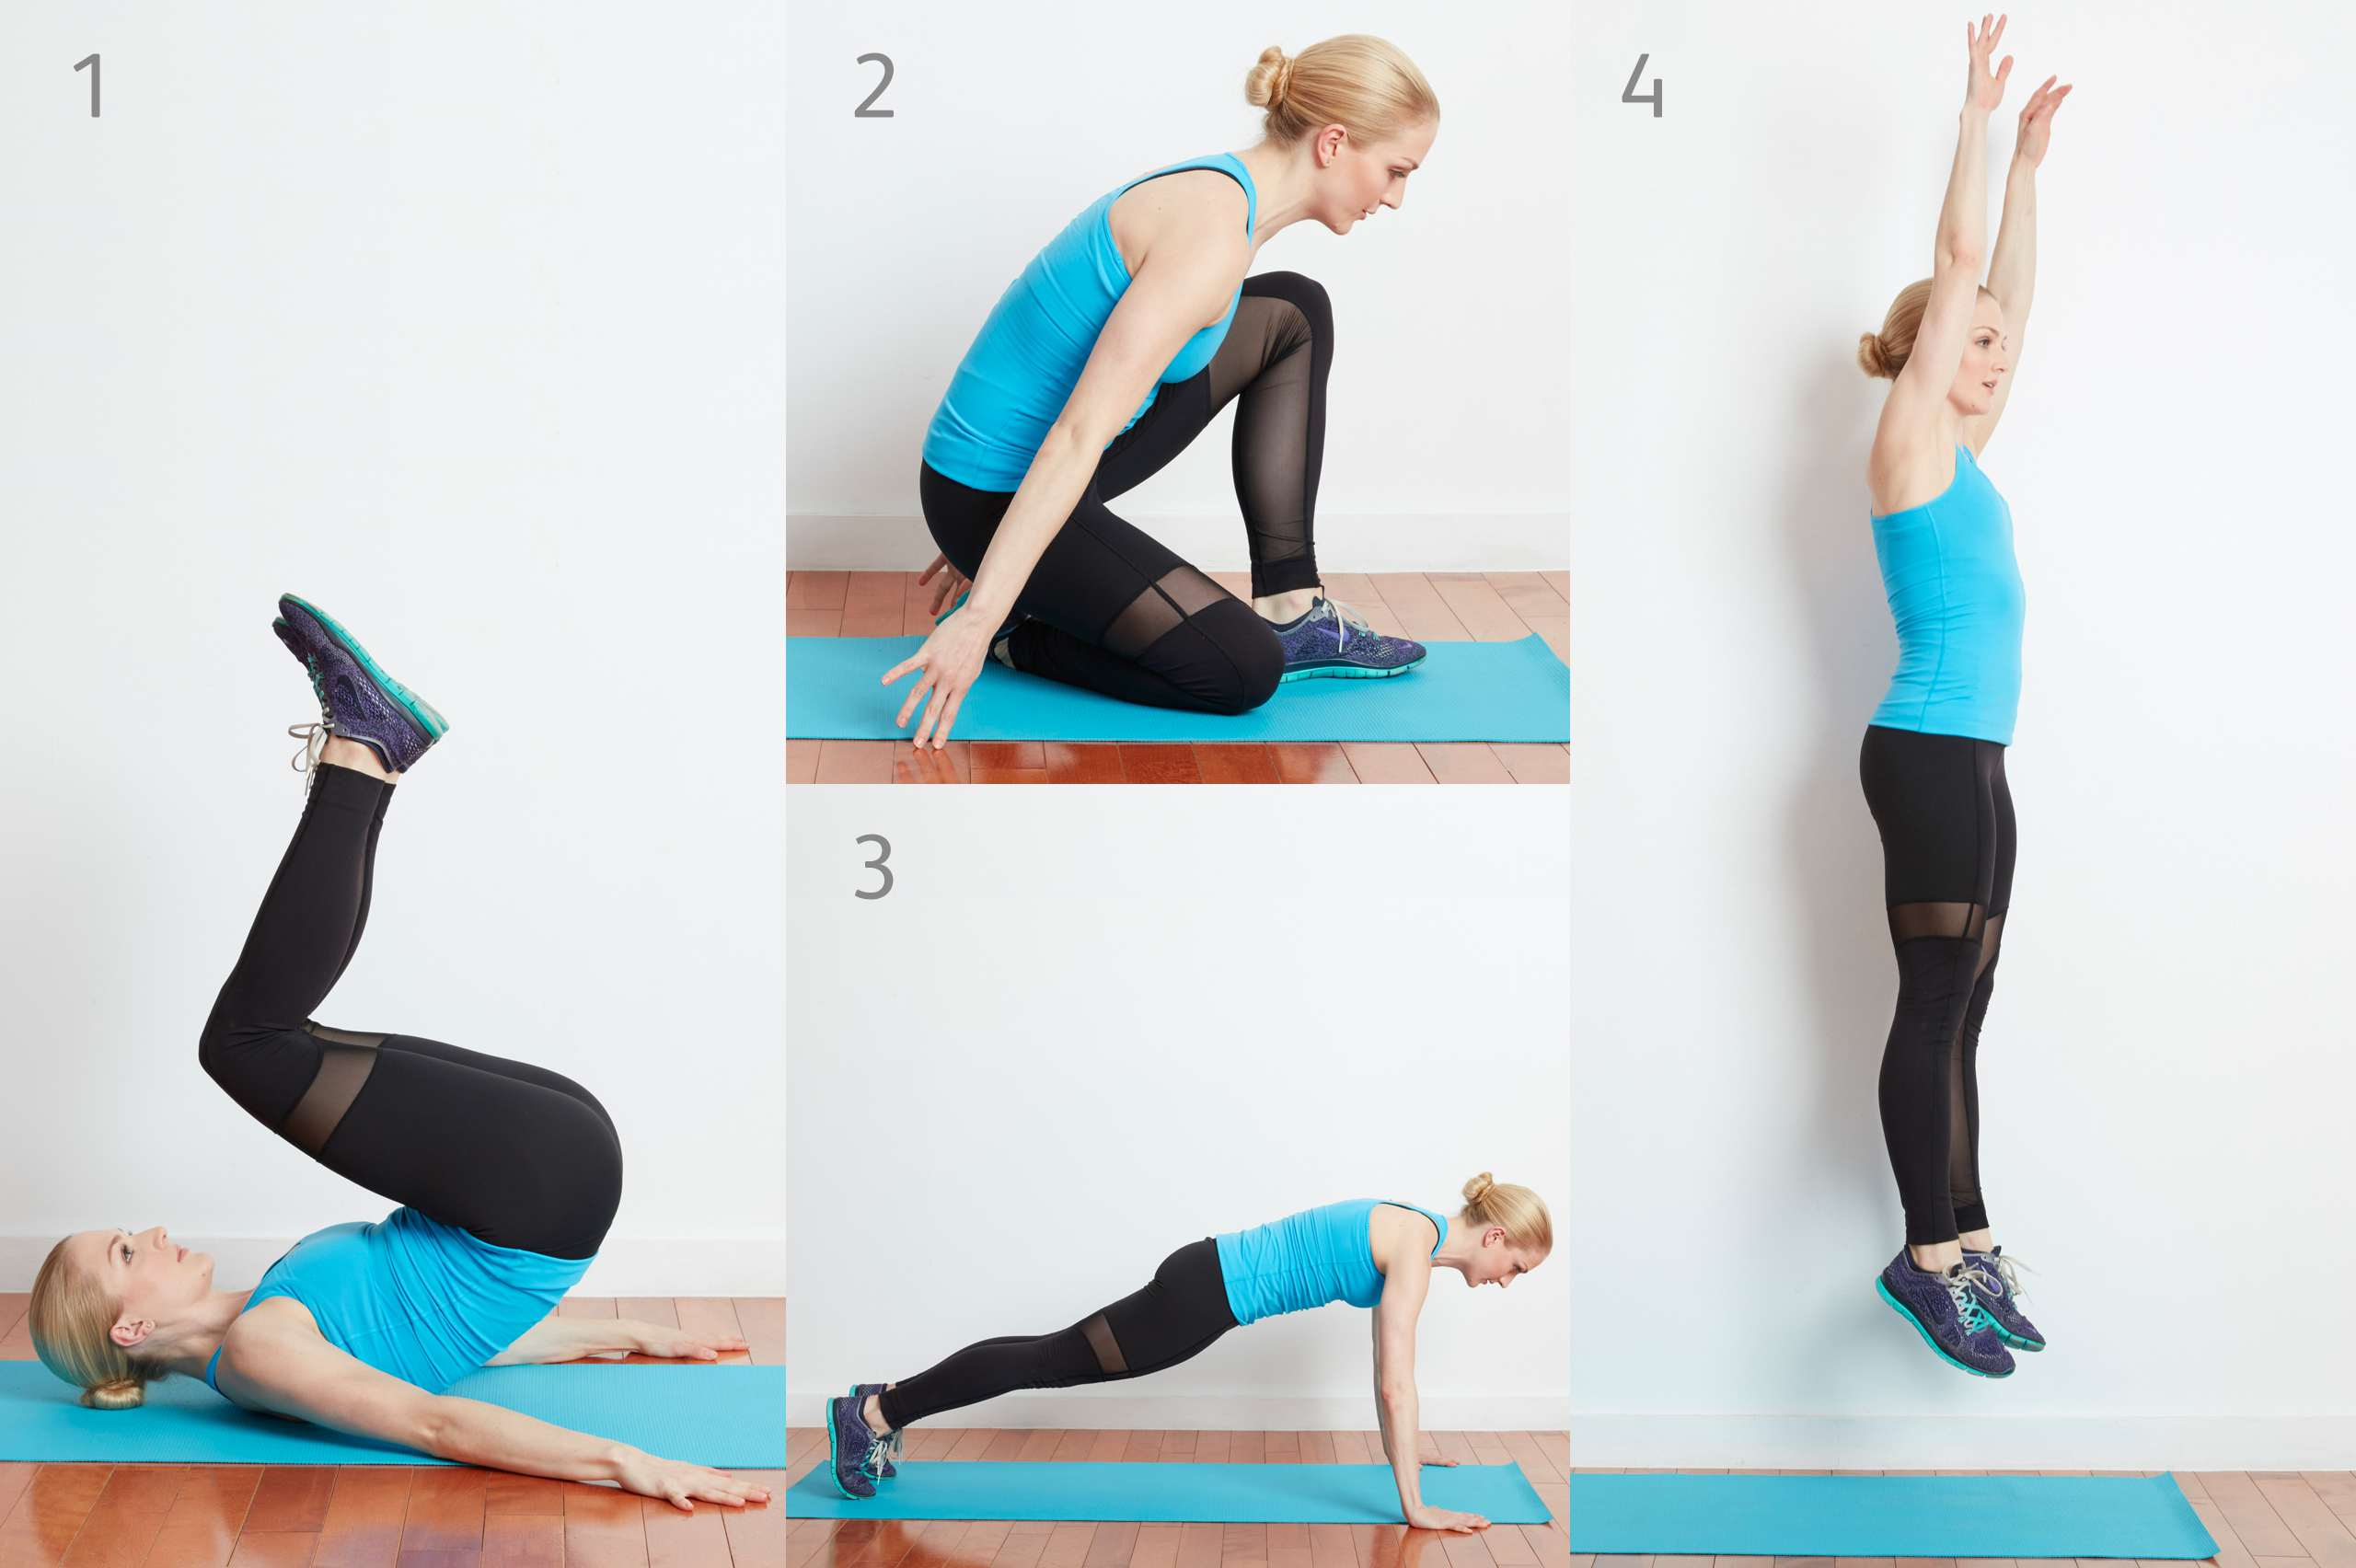 Woman doing roll-up with burpee exercise